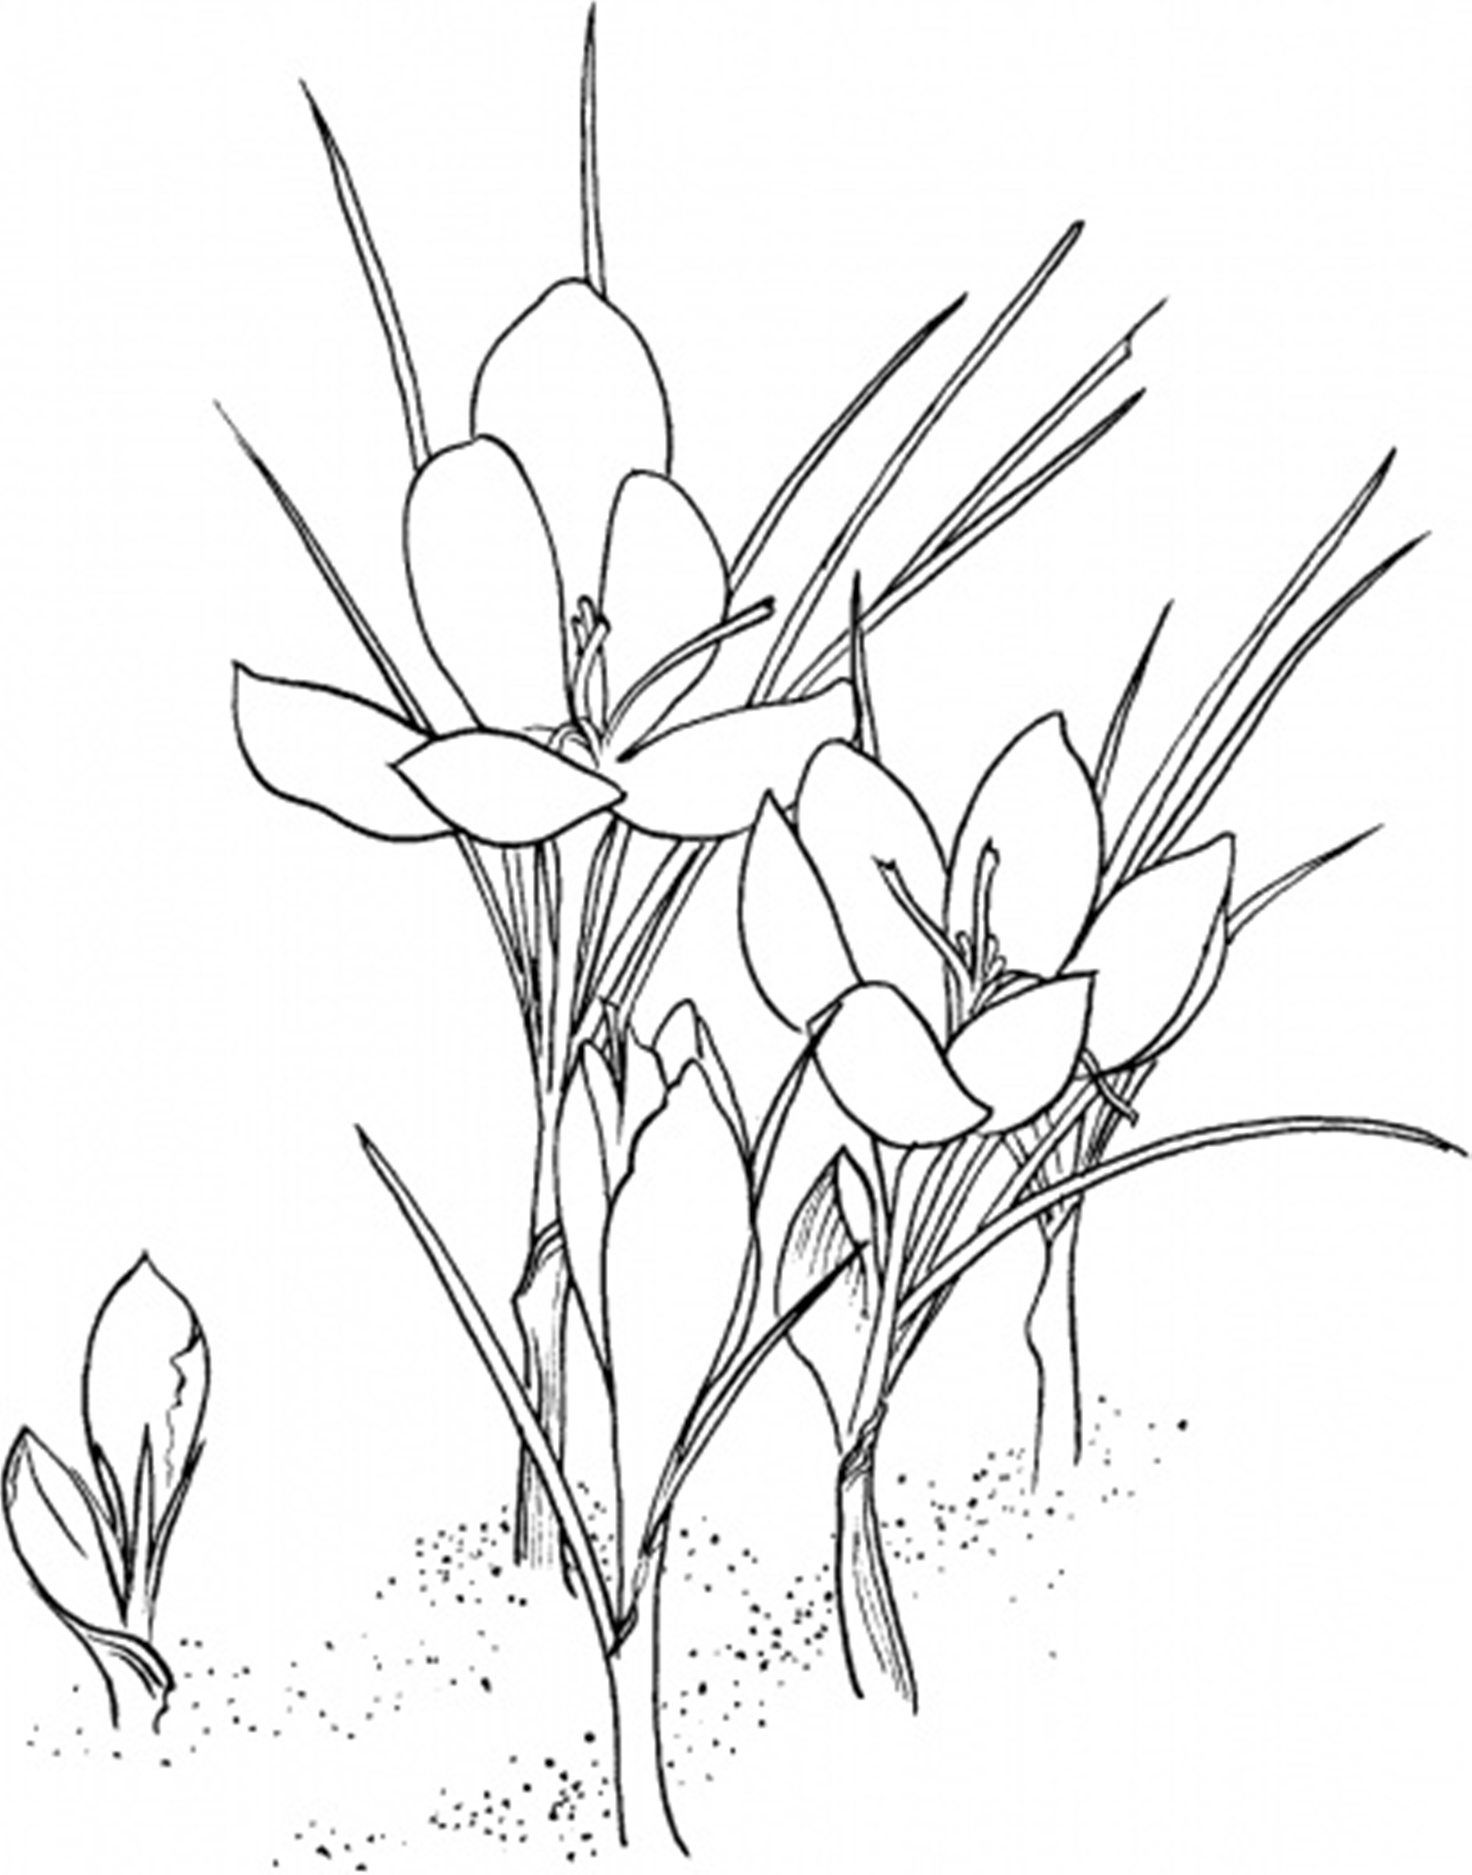 Flower Coloring, Crocus Flower Coloring Page: Crocus Flower Coloring ...